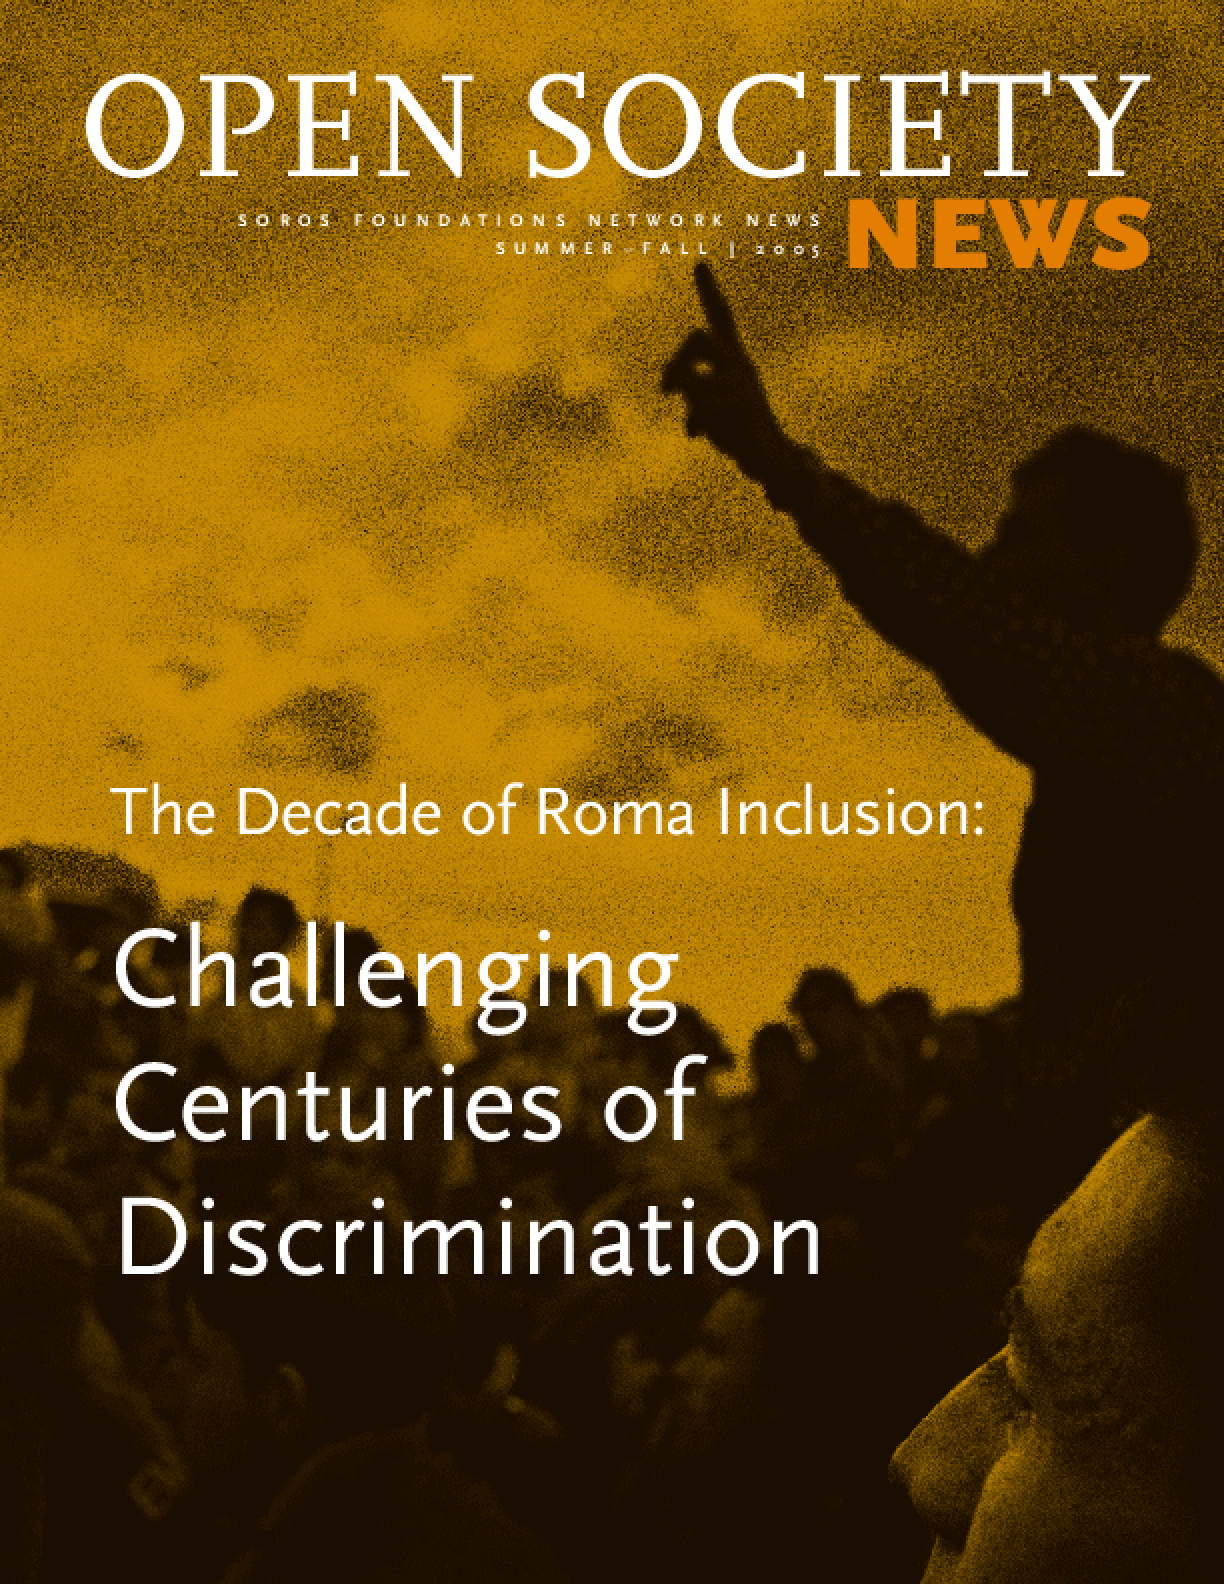 Decade of Roma Inclusion: Challenging Centuries of Discrimination (Open Society News, Summer-Fall 2005)